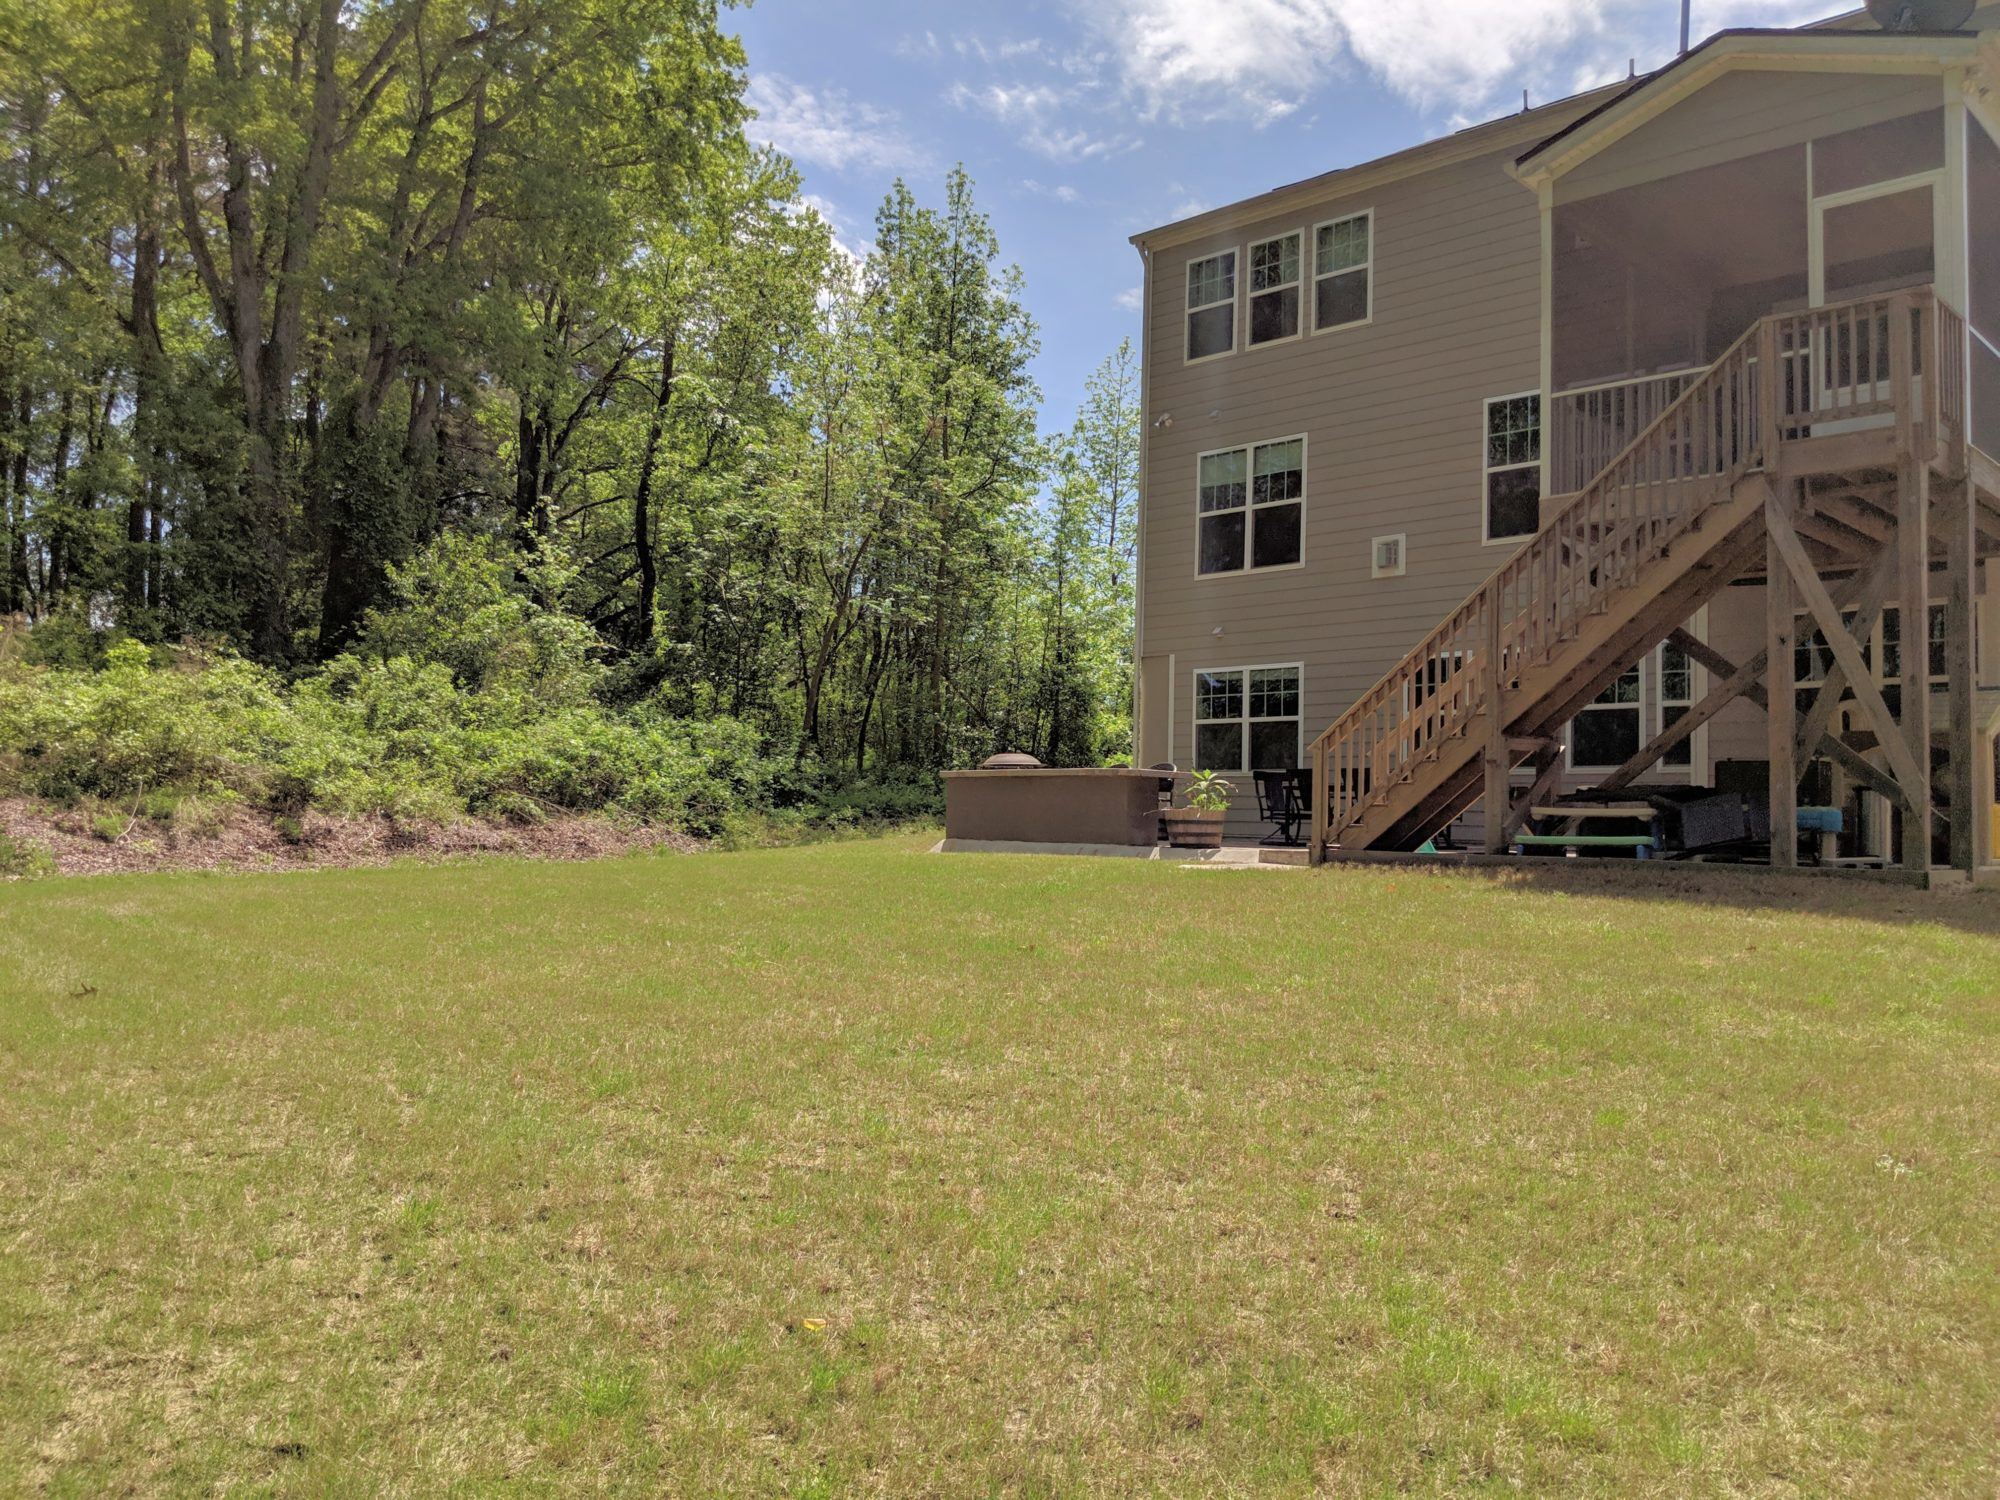 2051 Stanwood Apex - Hillman Real Estate Group - Back Yard